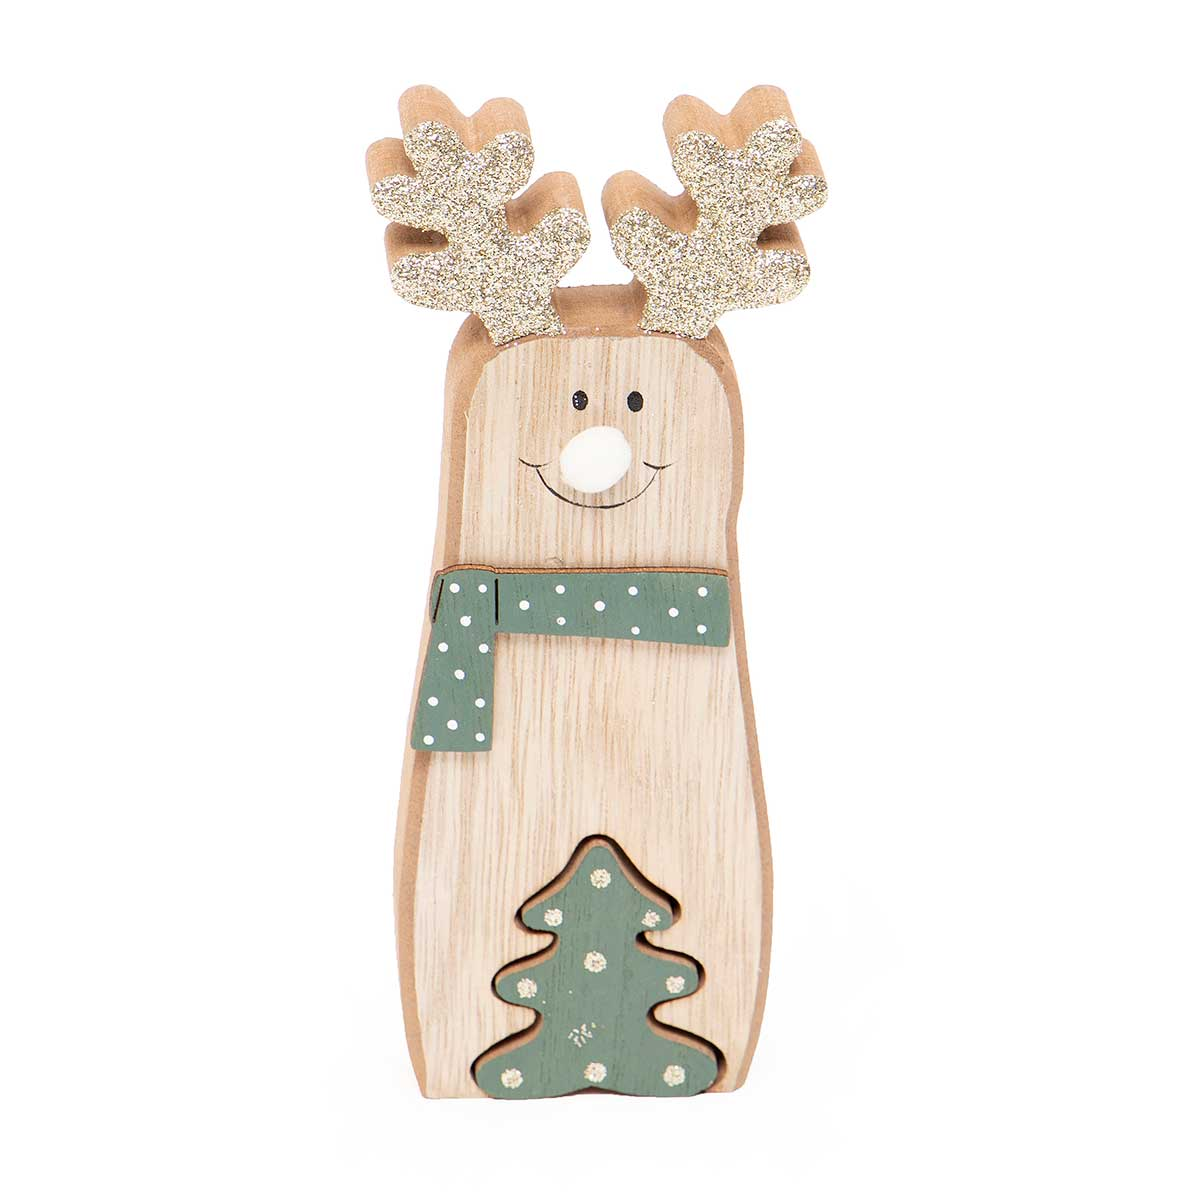 WOOD DEER WITH TREE & GLITTER